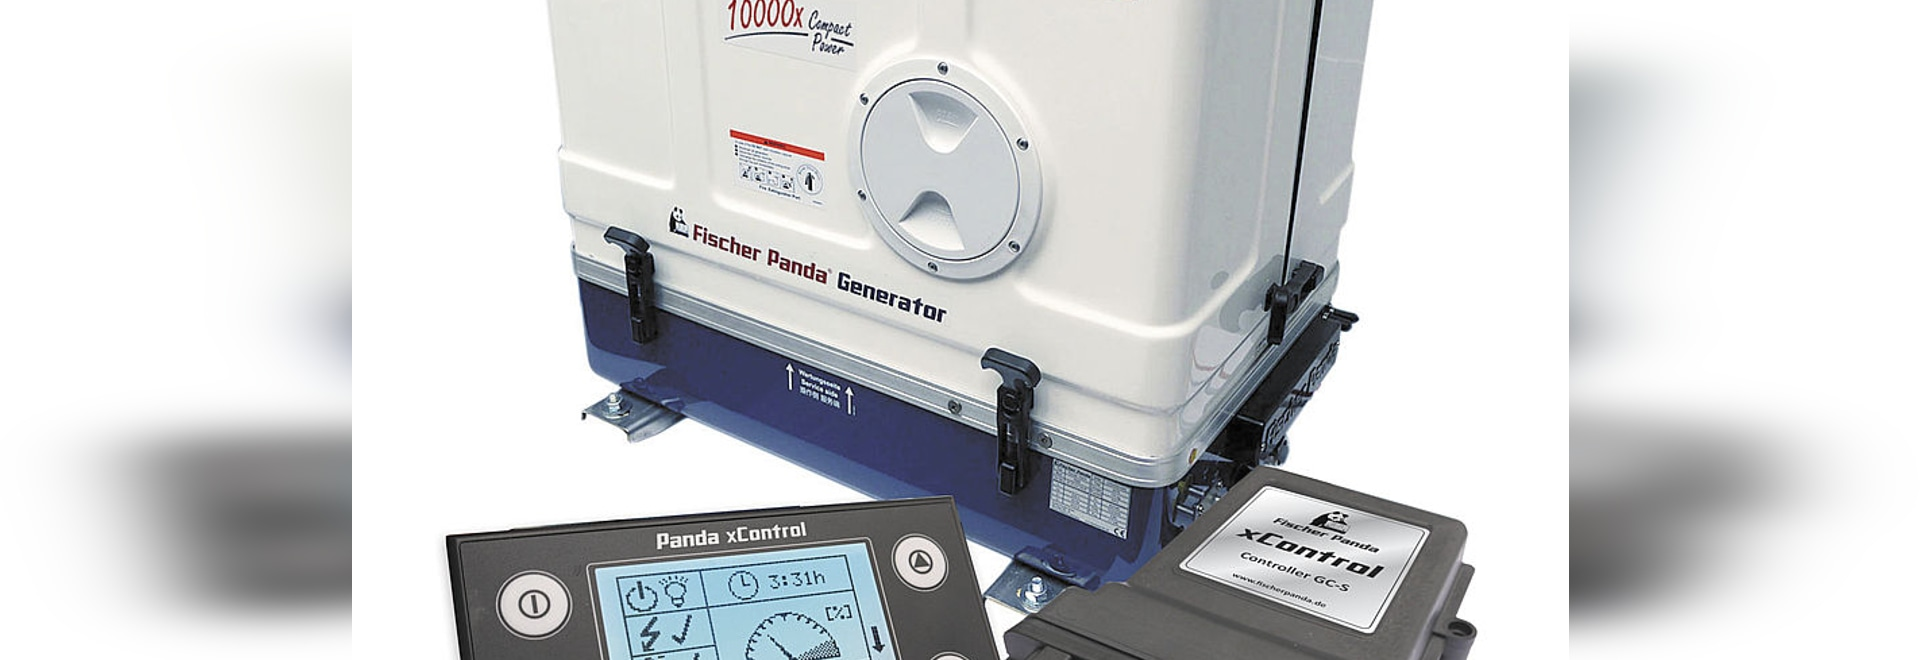 xControl - The new generator control of Fischer Panda